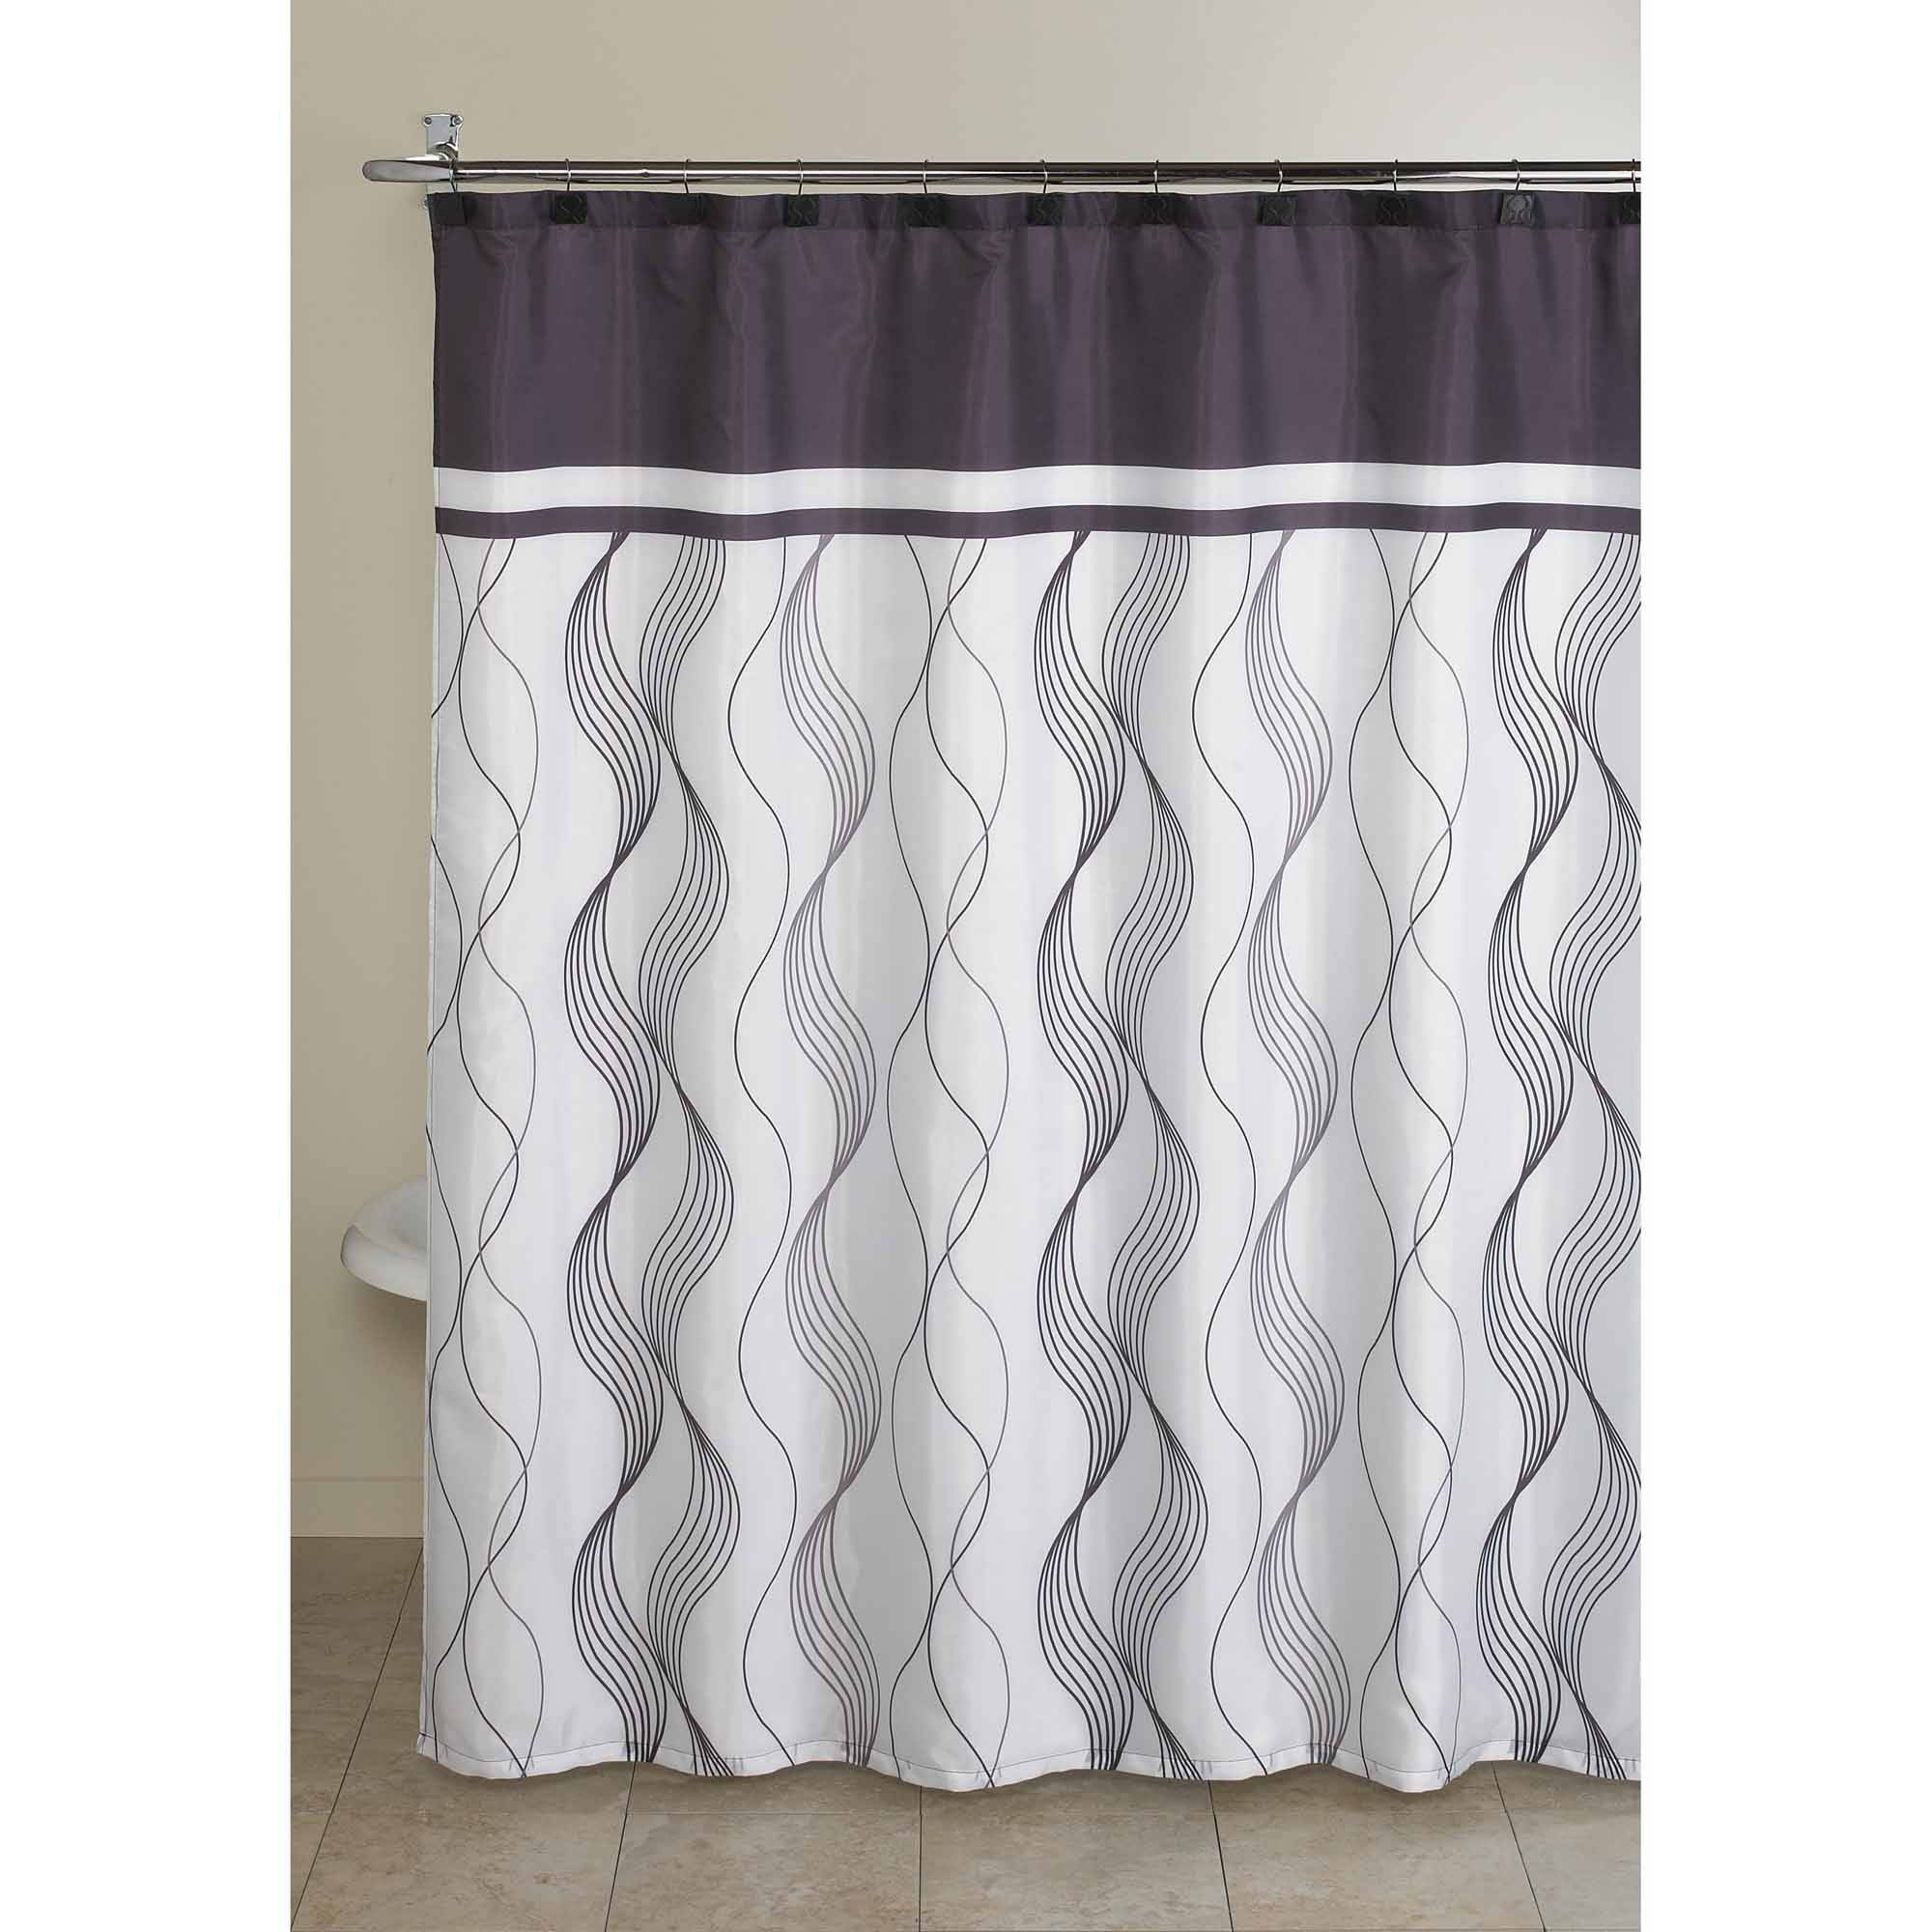 Mainstays 13-Piece Fabric Shower Curtain and Decorative Hooks Bath Set, Multiple Colors and Sizes Available